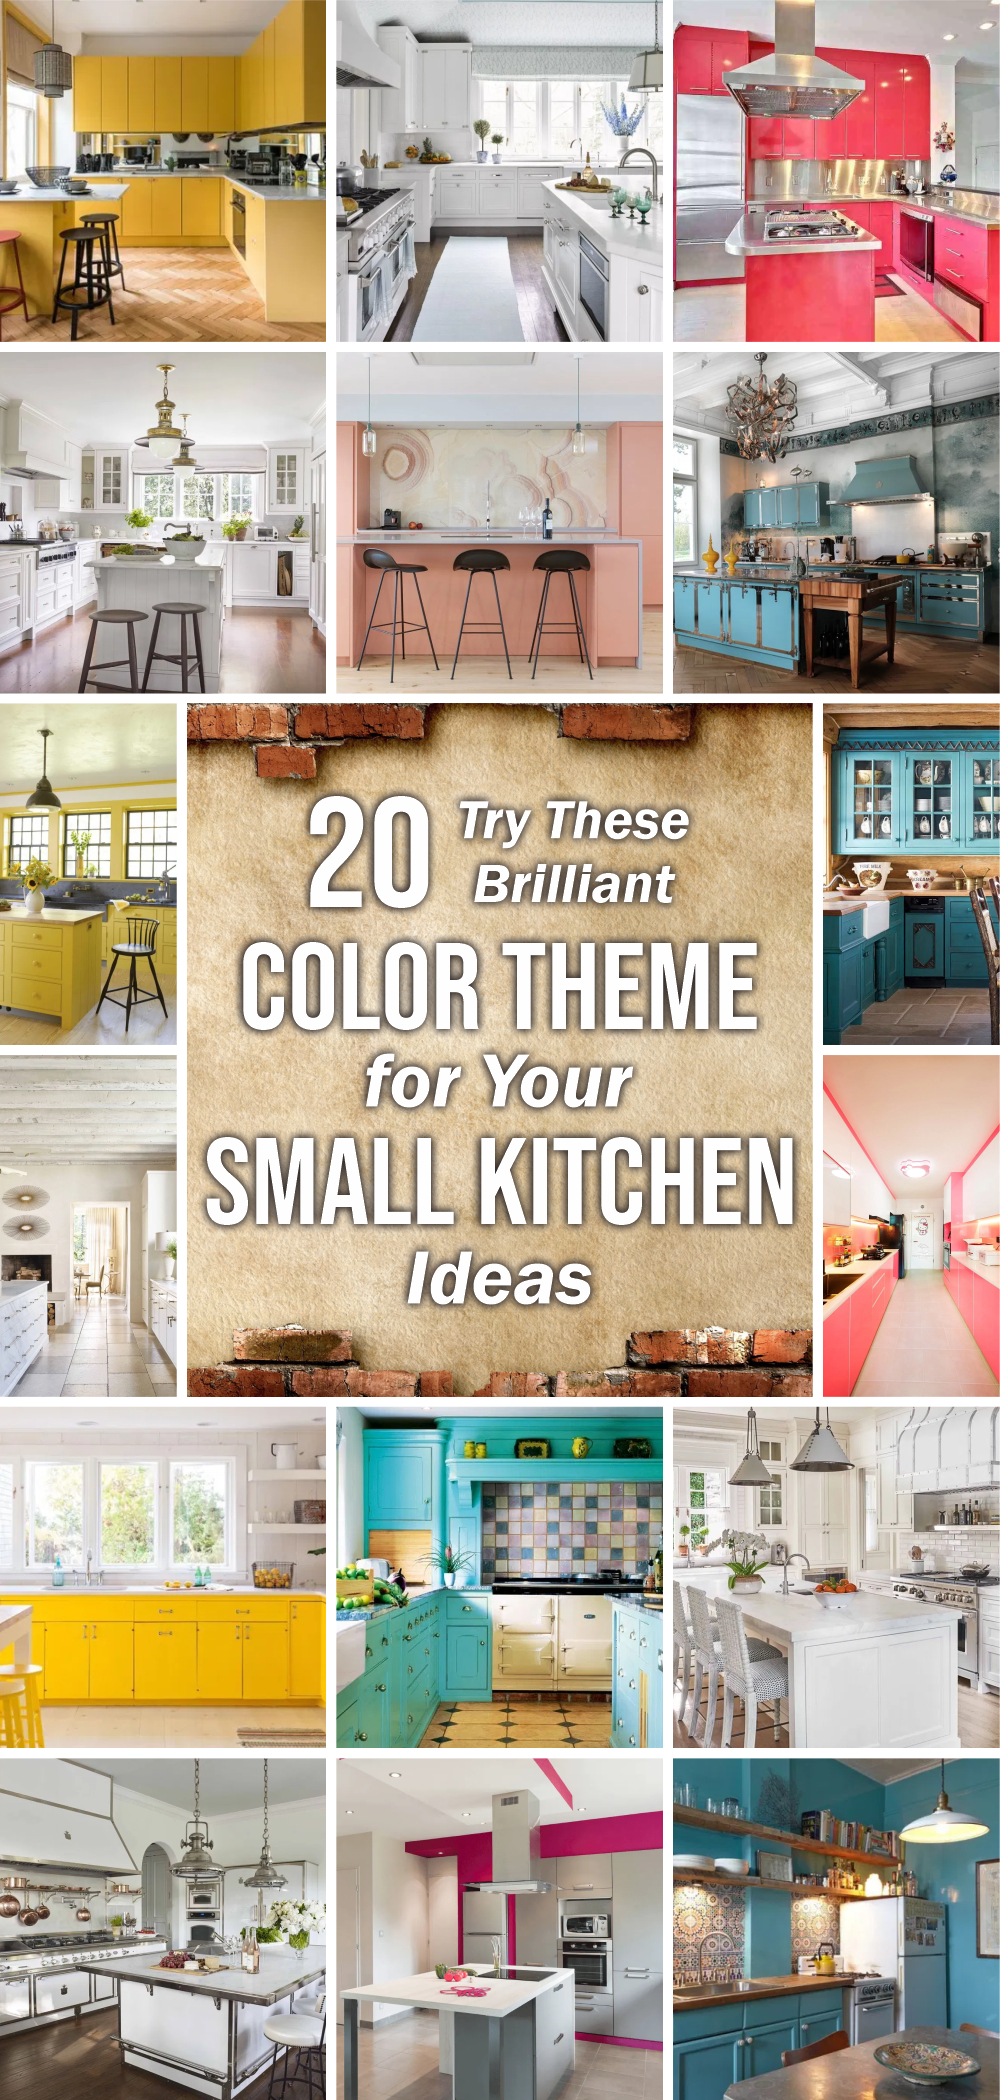 20 try these brilliant color theme for you small kitchen ideas 1